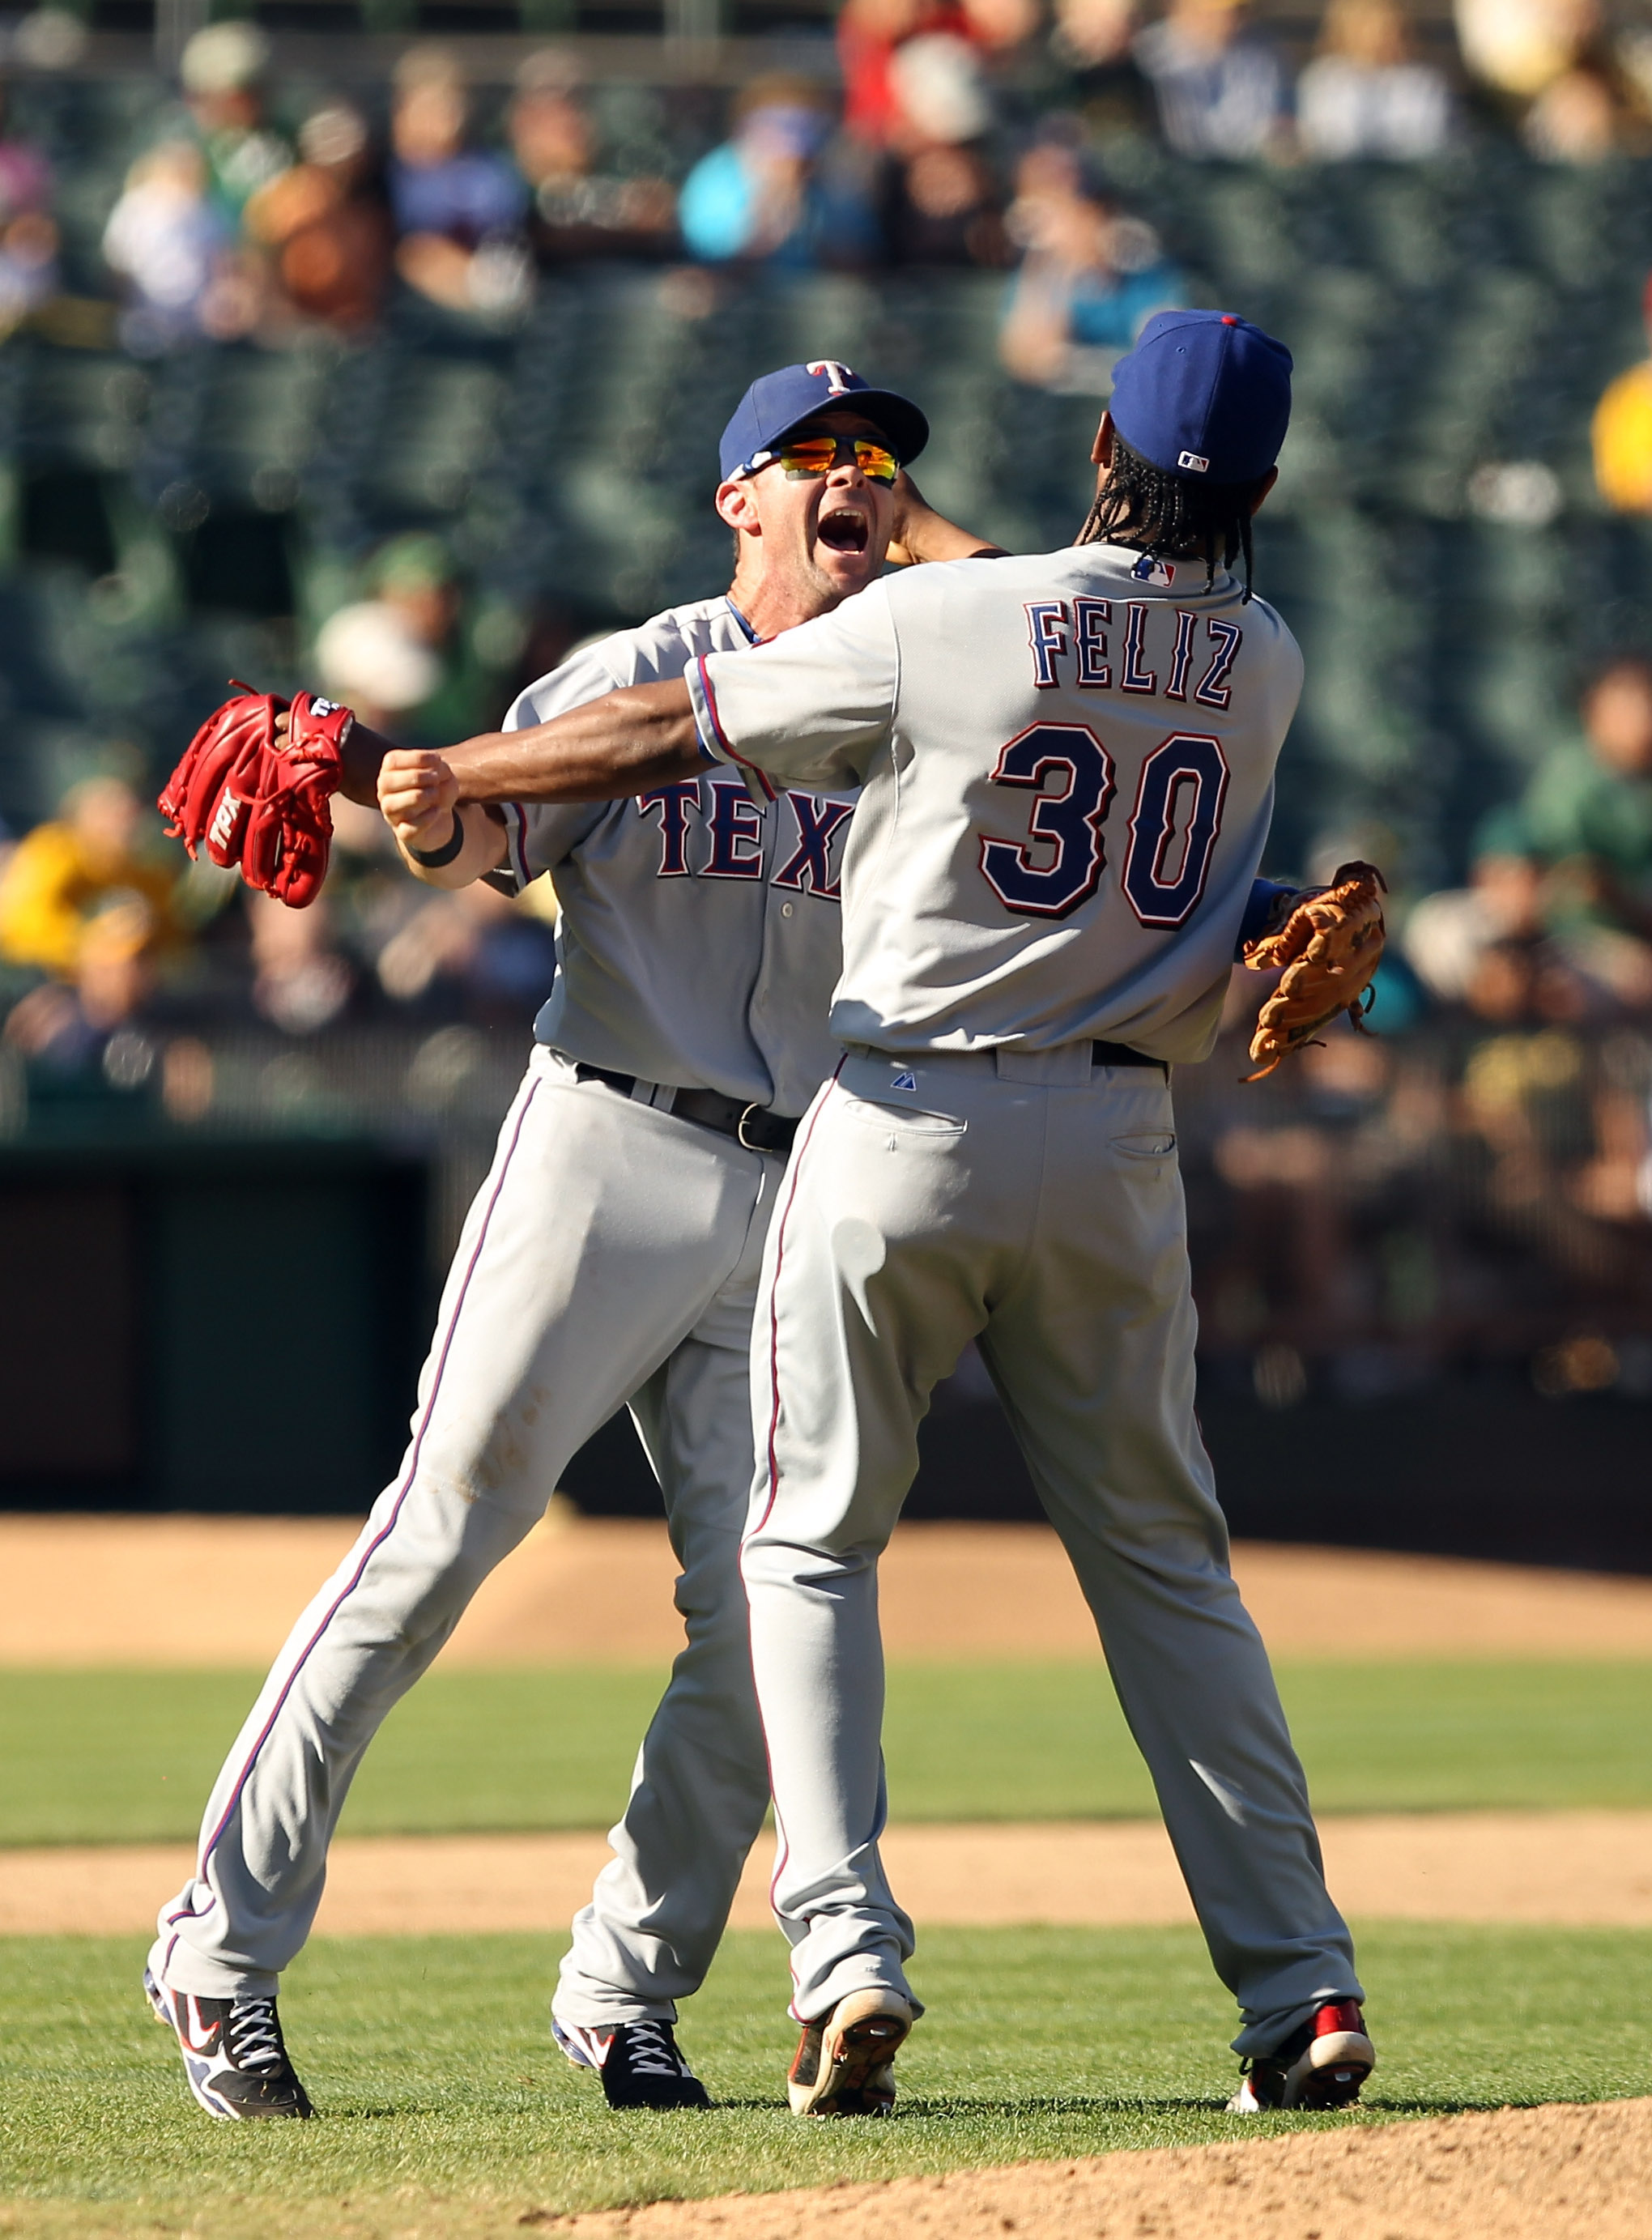 OAKLAND, CA - SEPTEMBER 25:  Michael Young #10 and Neftali Feliz #30 of the Texas Rangers celebrate after they beat the Oakland Athletics to clinch the American League West Title at the Oakland-Alameda County Coliseum on September 25, 2010 in Oakland, Cal